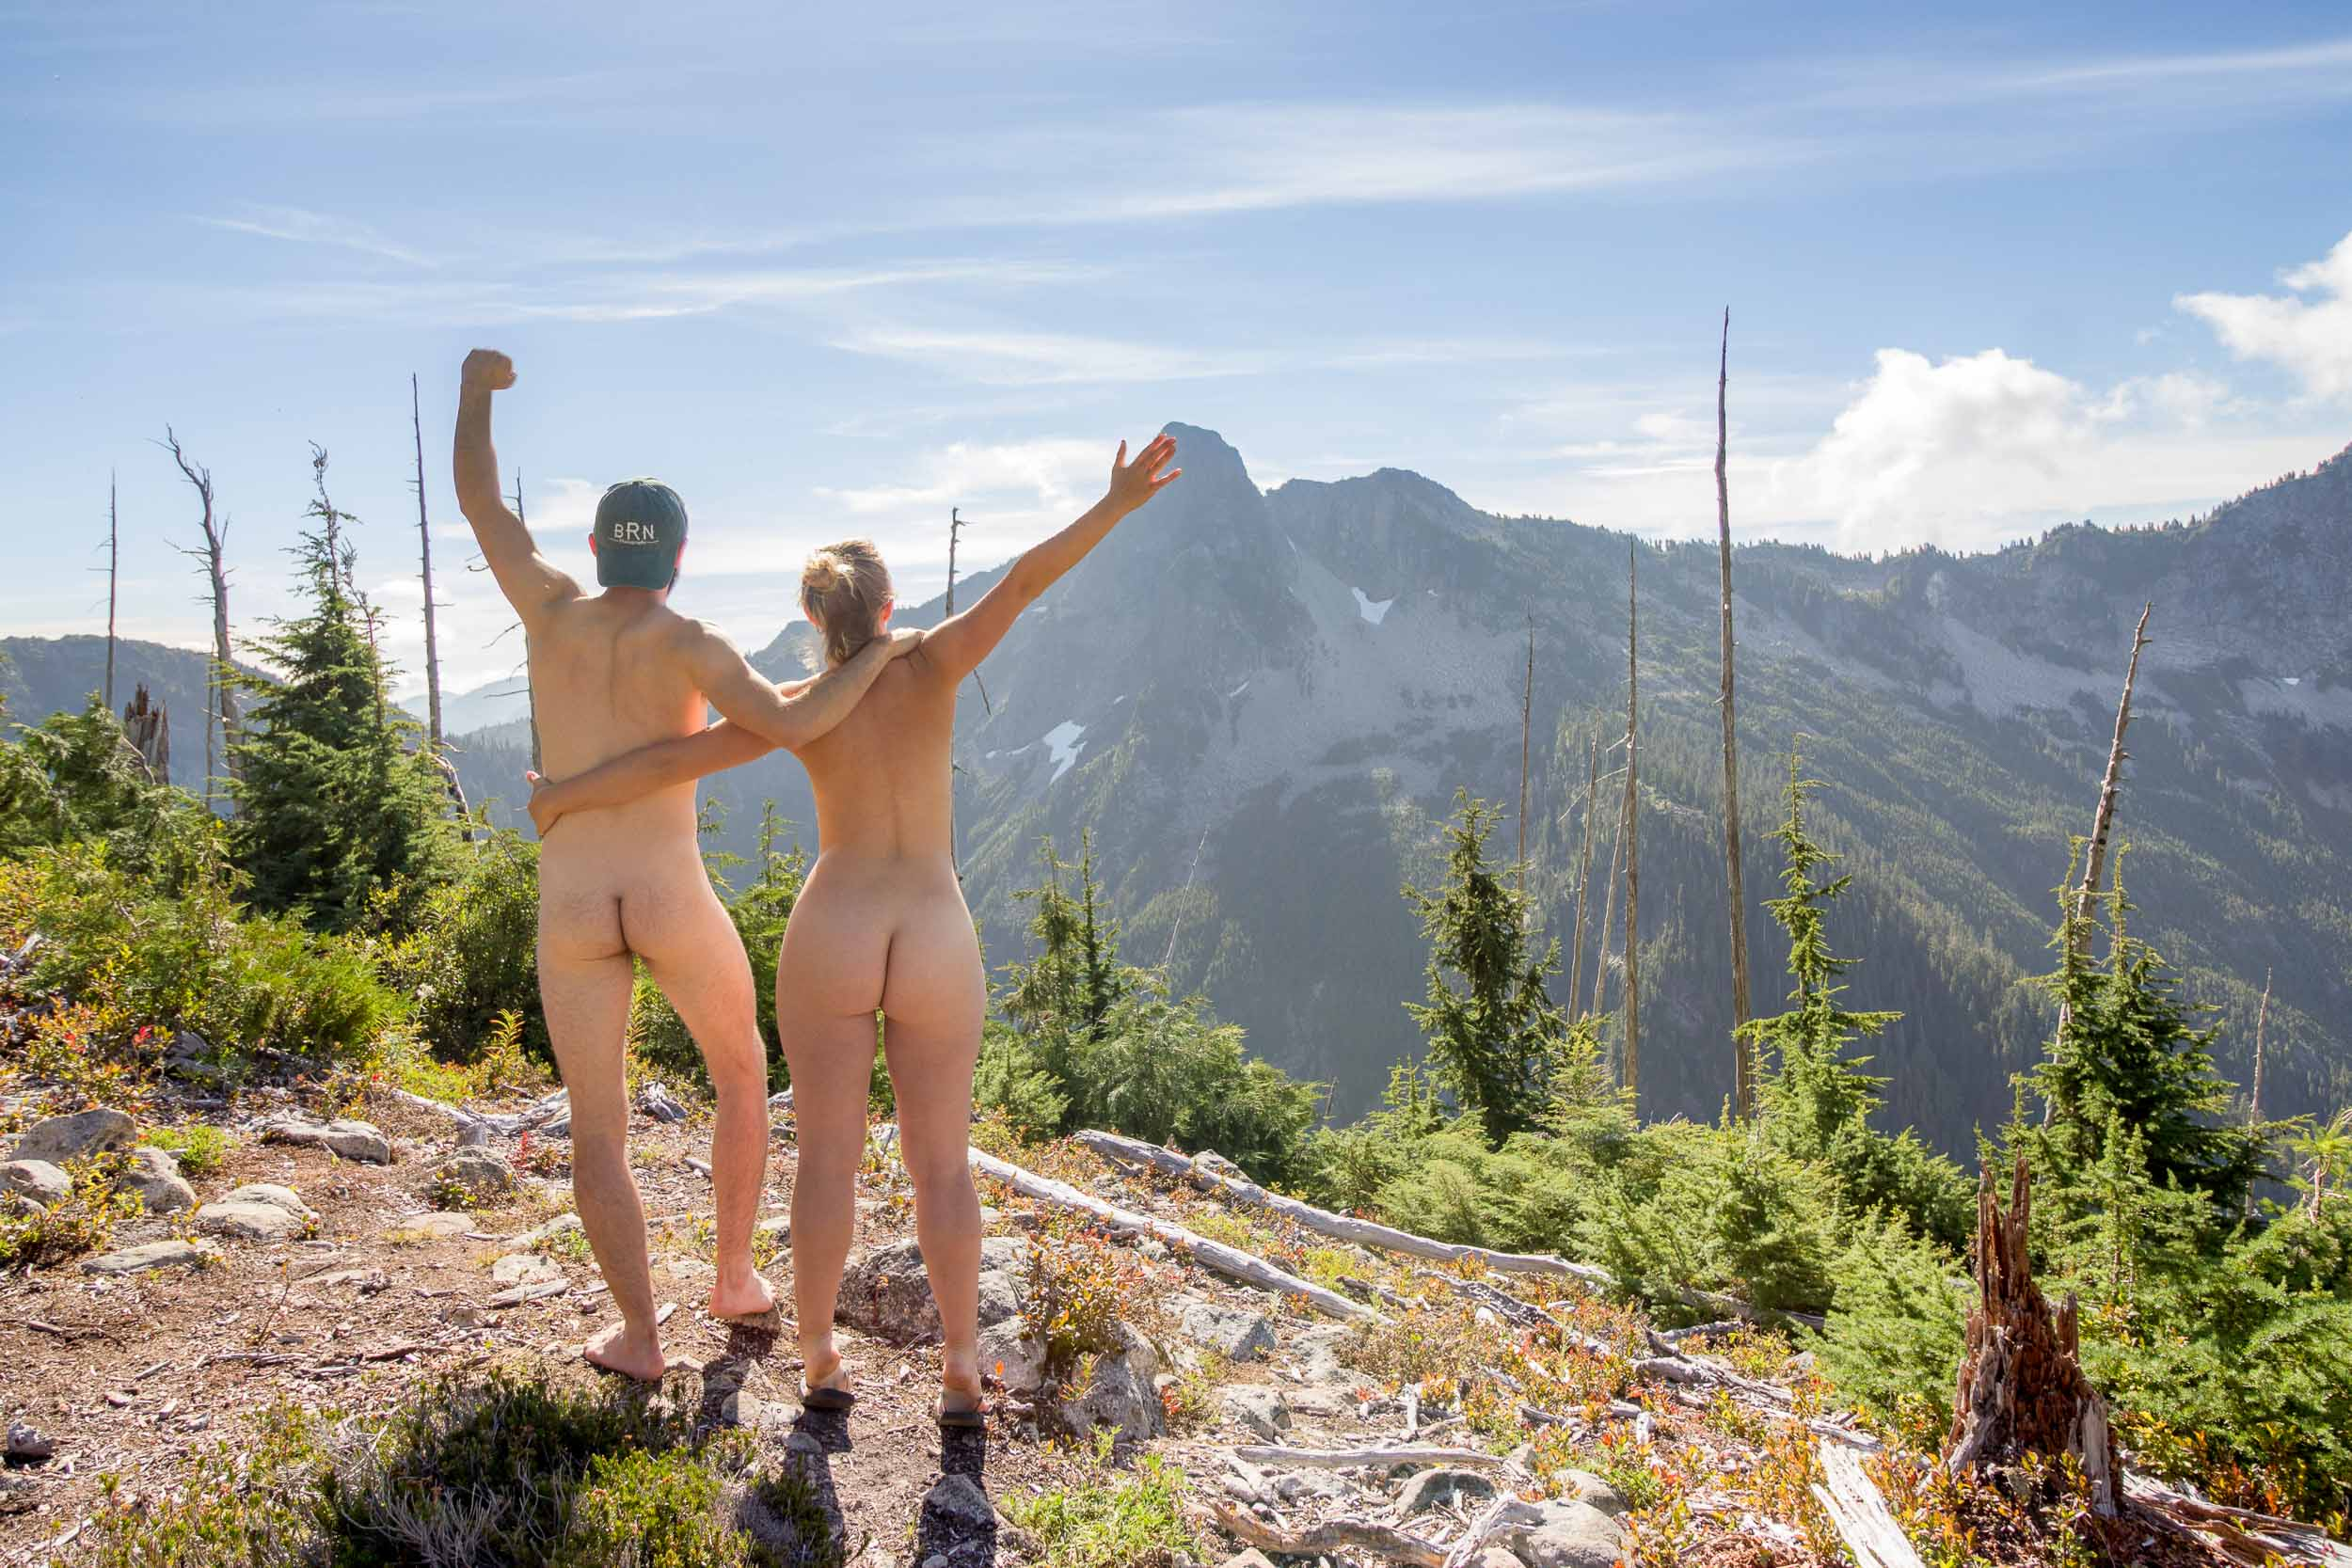 Getting Naked in Nature Movement